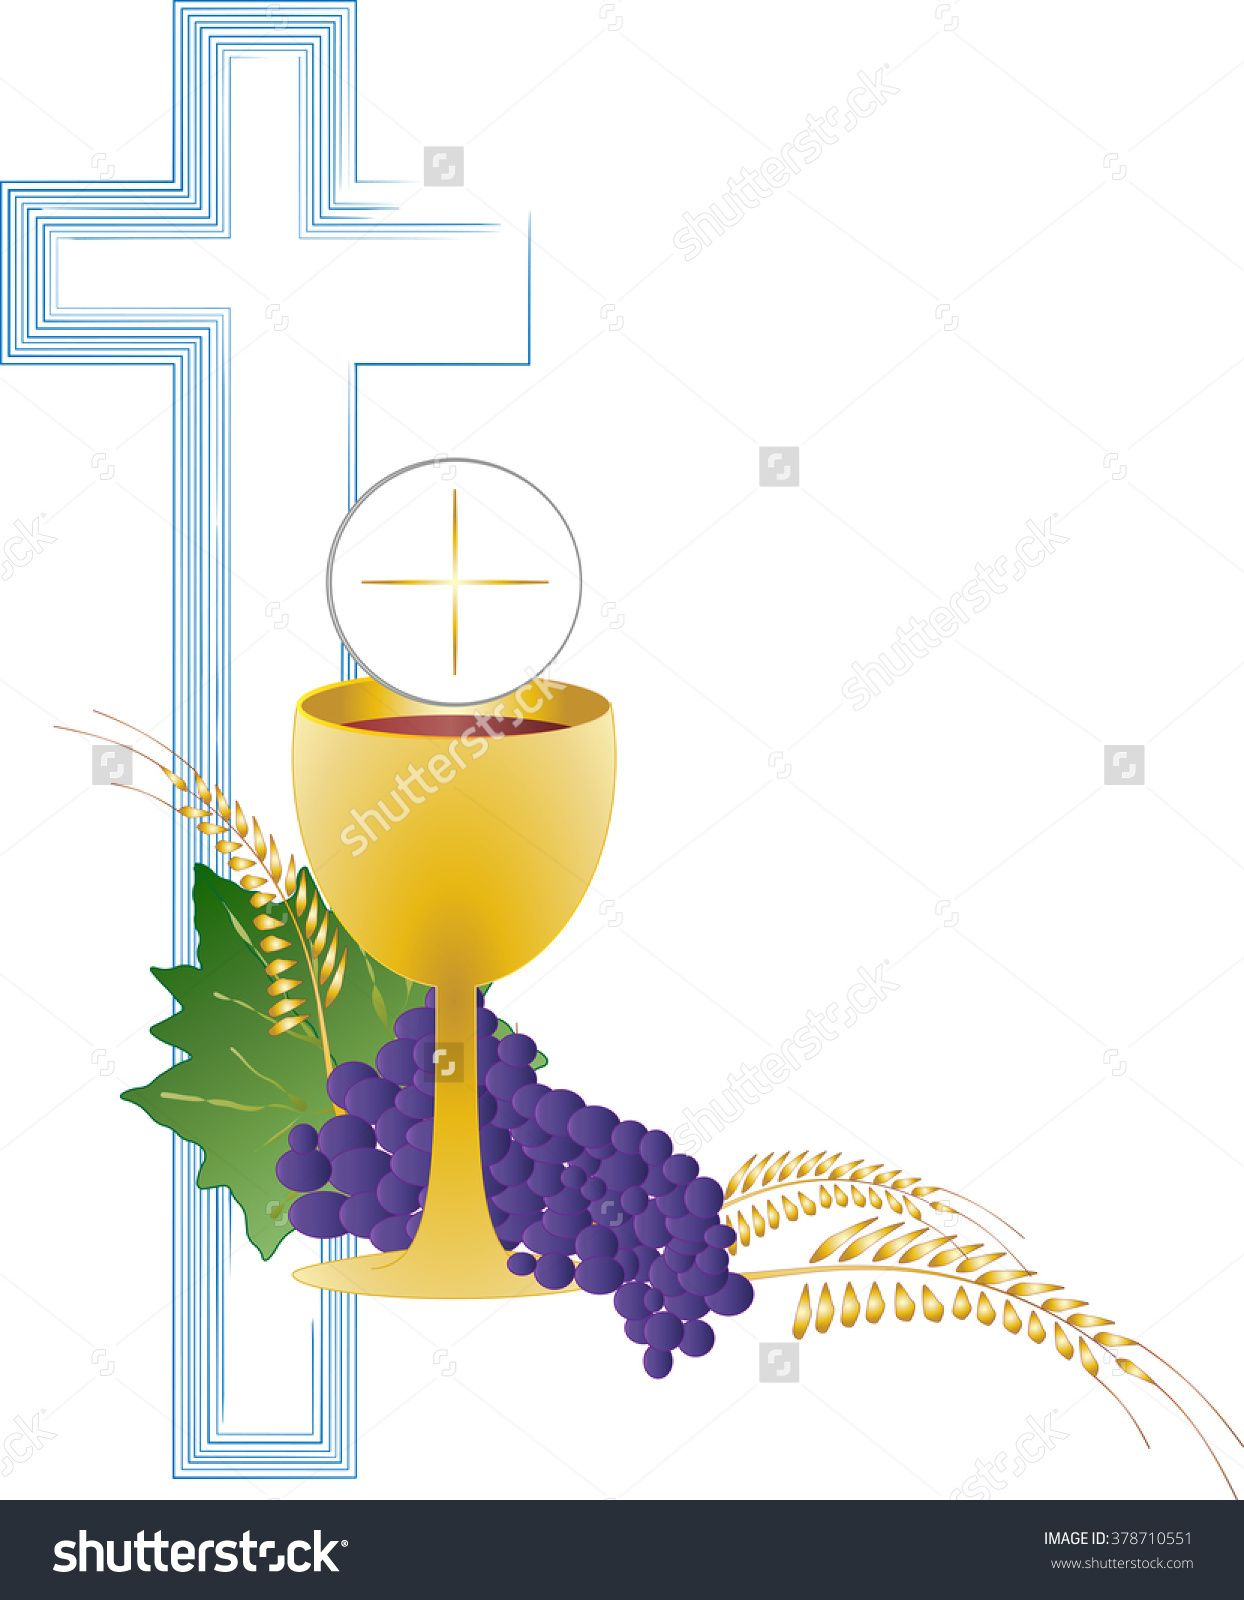 Eucharist Symbol Of Bread And Wine, Chalice And Host, With Wheat.